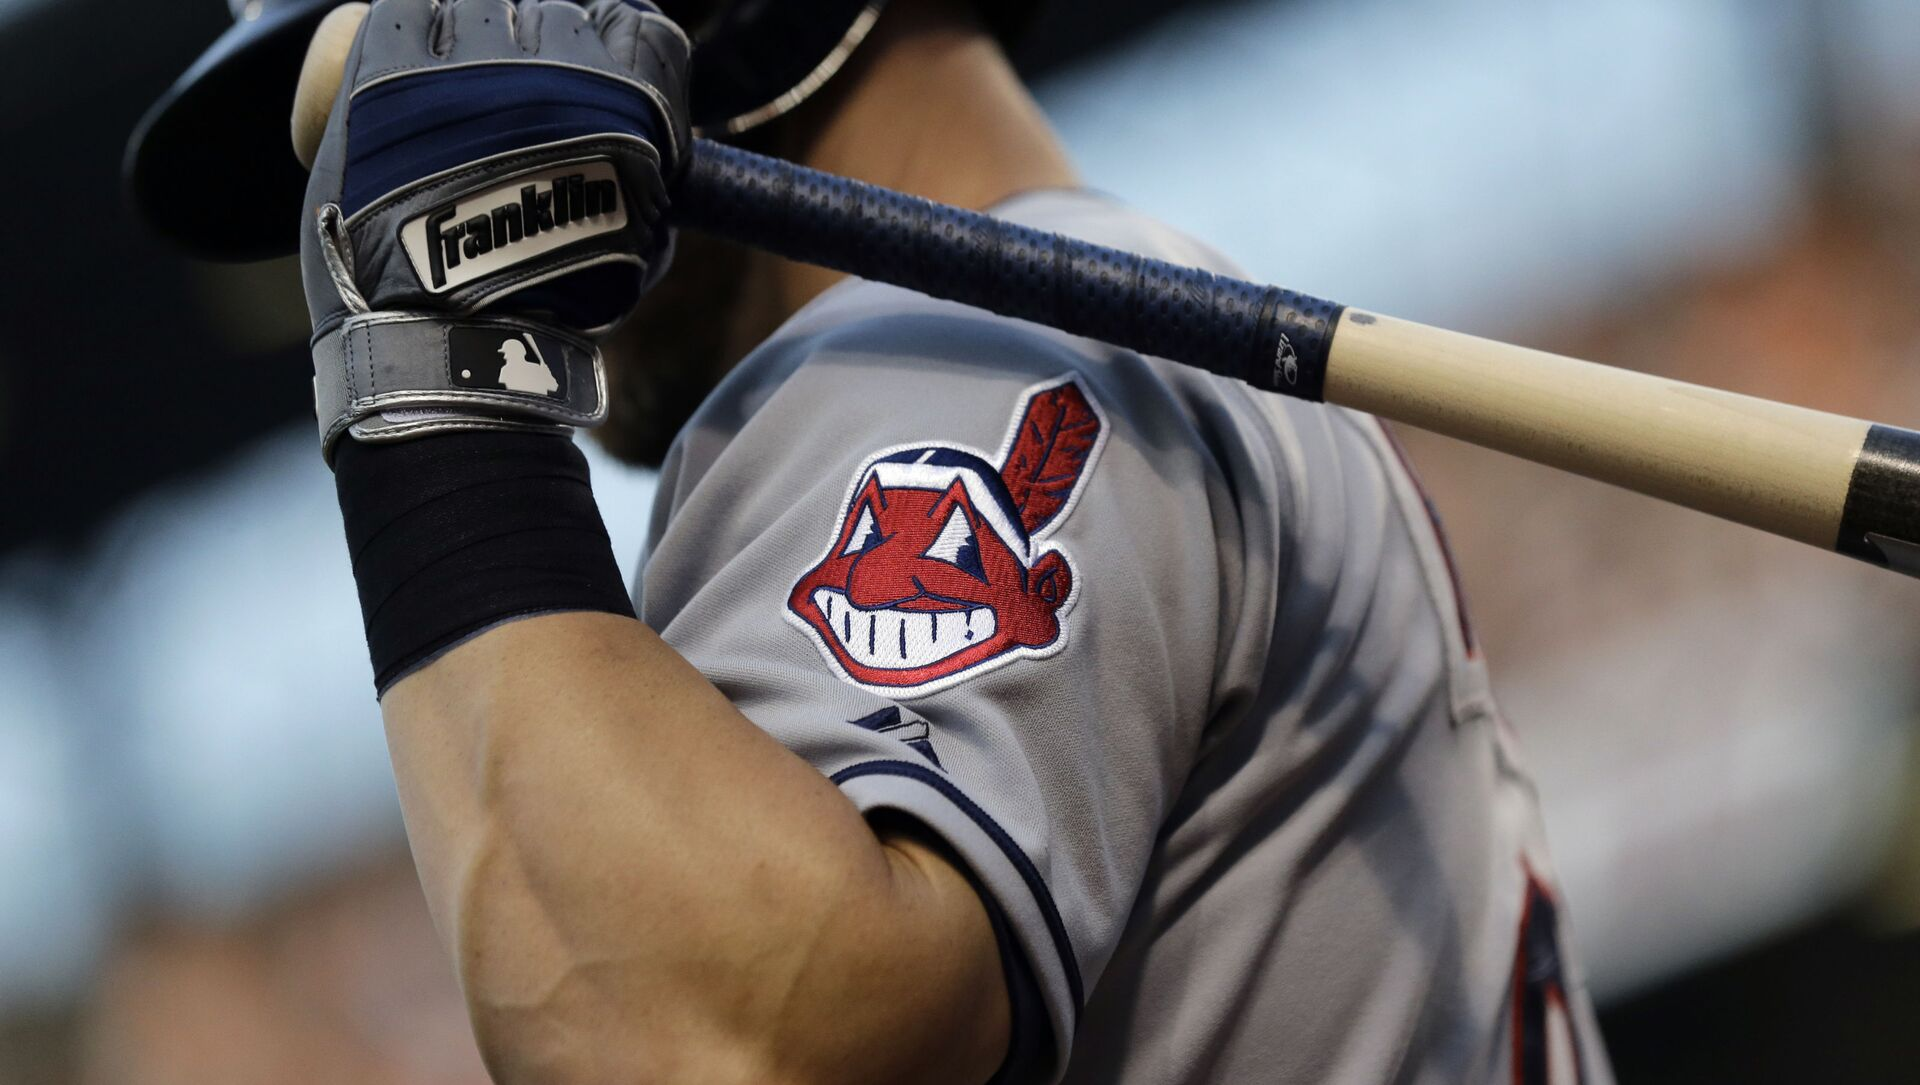 FILE - This June 26, 2015, file photo, shows the Cleveland Indians logo on a jersey during a baseball game against the Baltimore Orioles in Baltimore - Sputnik International, 1920, 25.07.2021